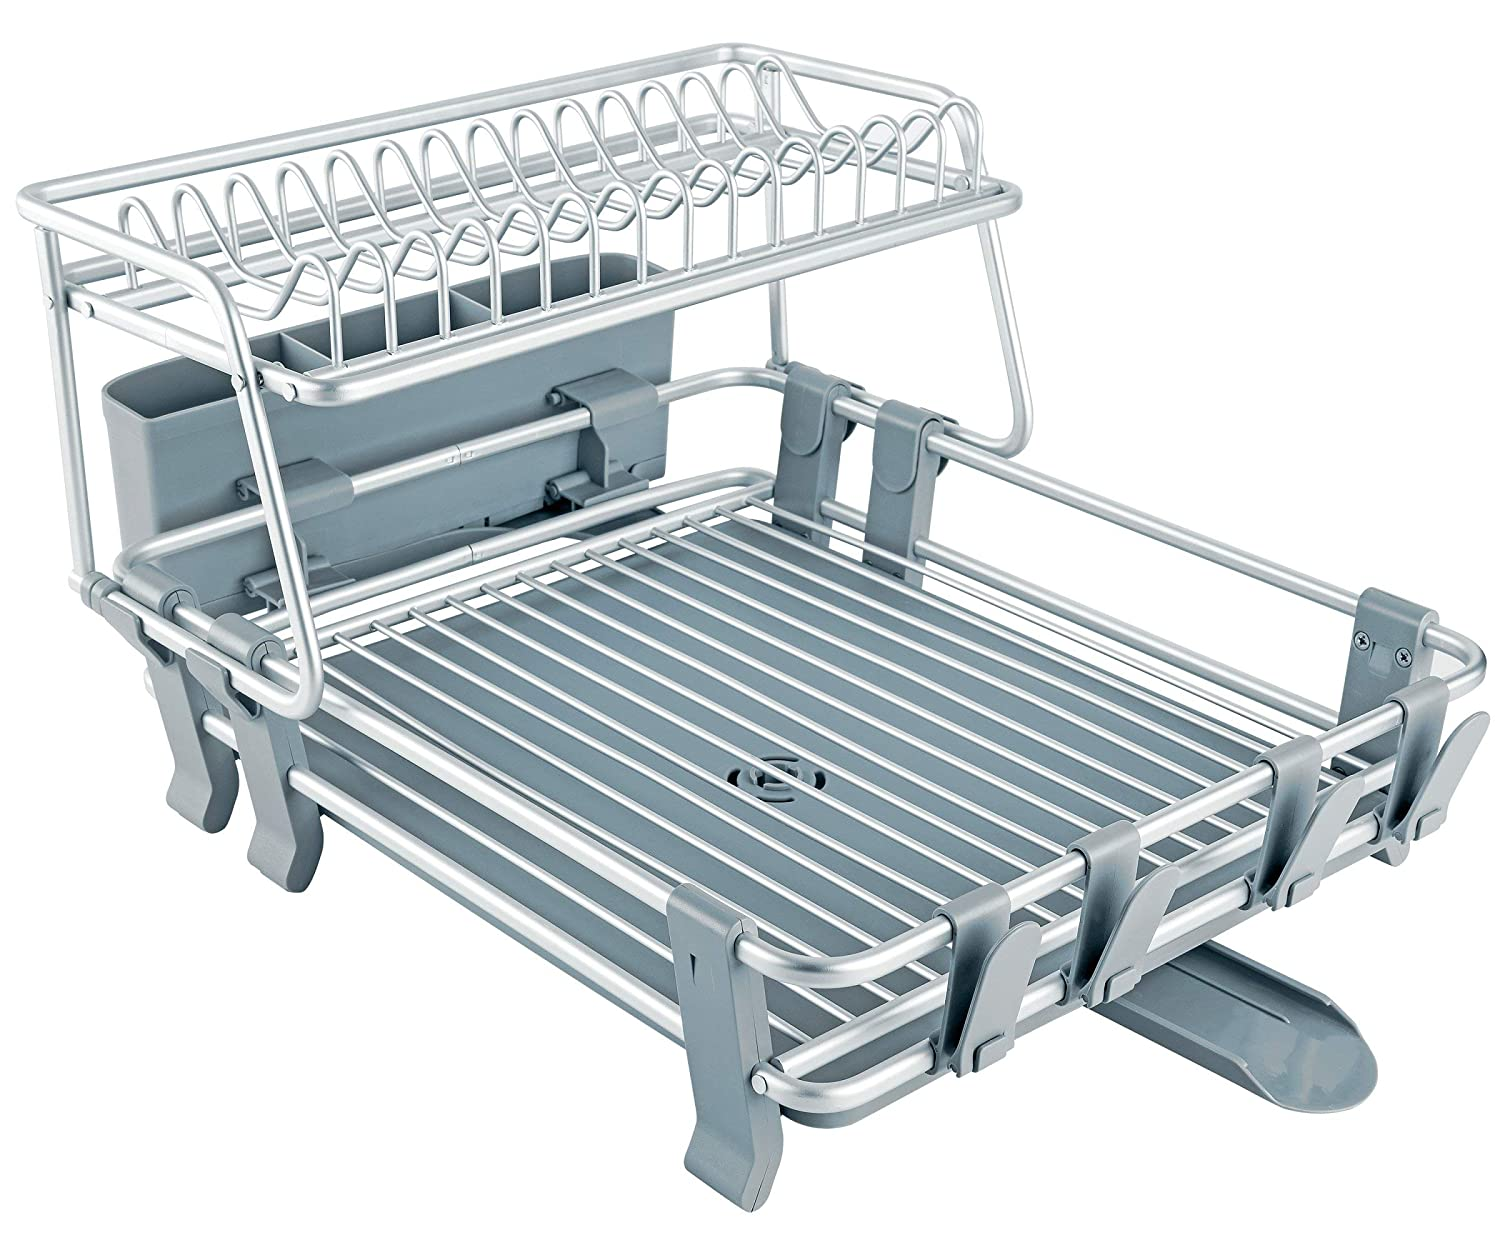 VENETIO ADR-0003 Delux Aluminum Drying Rack 2 Tiers with Removable Dish Drainer Tray 360° Swivel Spout, with Anti-slip Cup Holder for Big Kitchen Counter, 17.7 x 14.2 x 10.24 IN, Gray